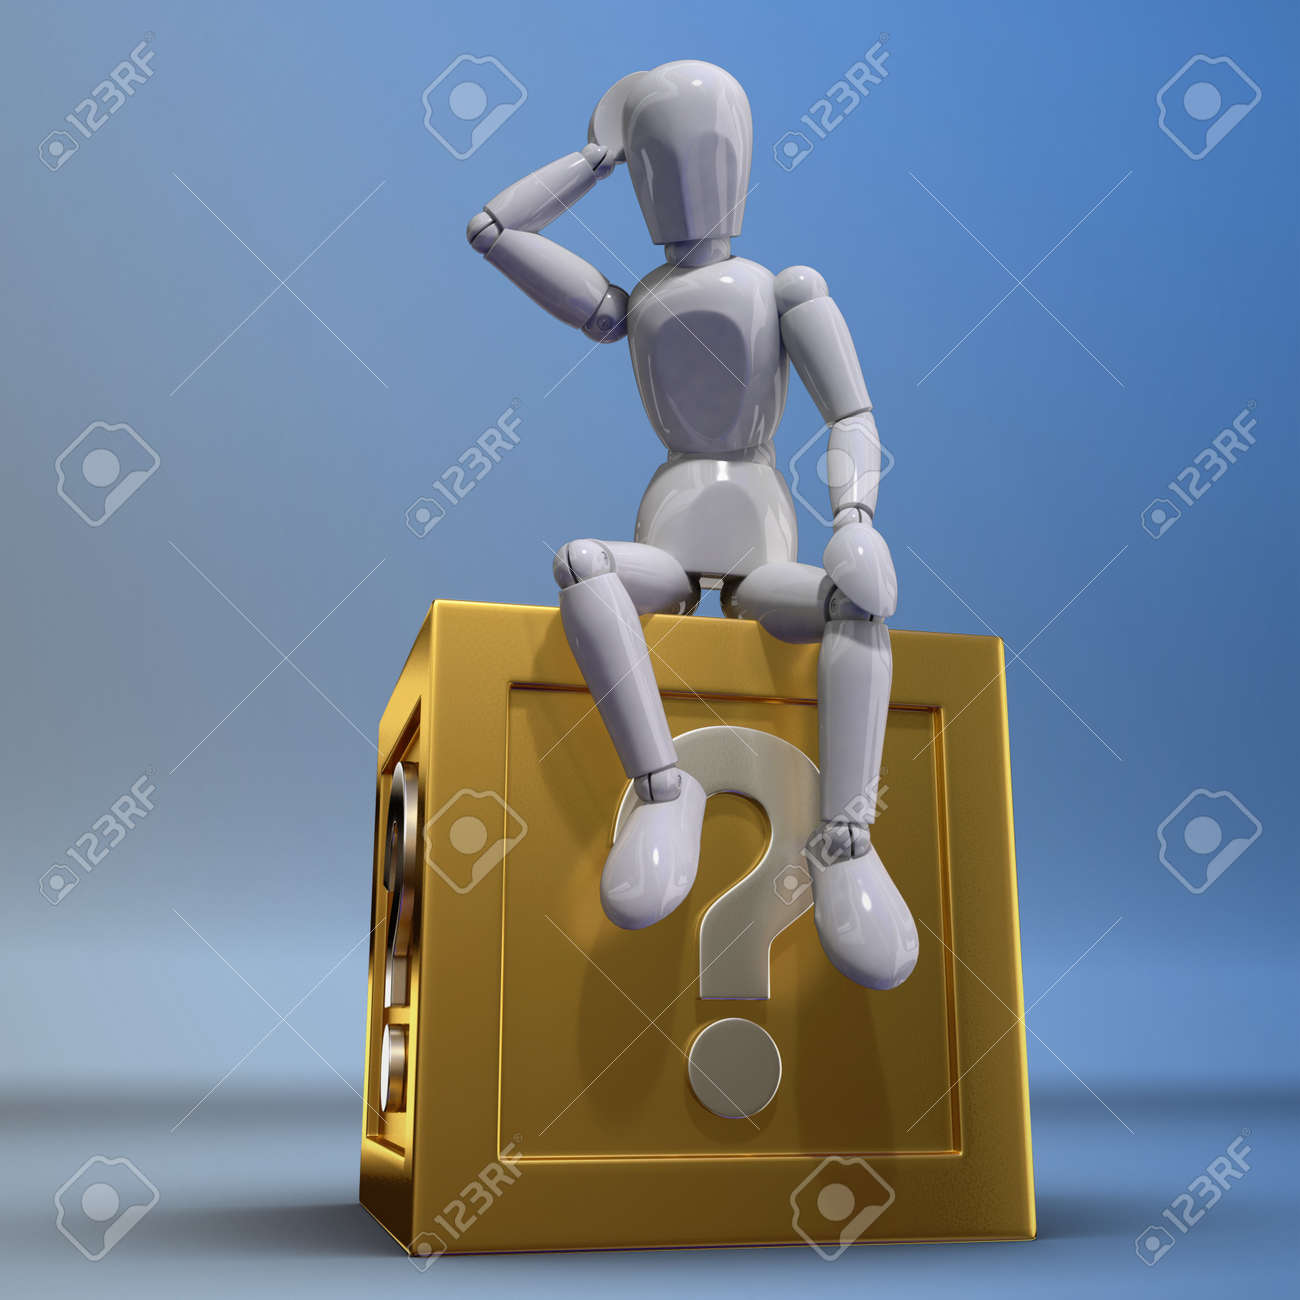 A puppet is thinking on a  question box Stock Photo - 13223837